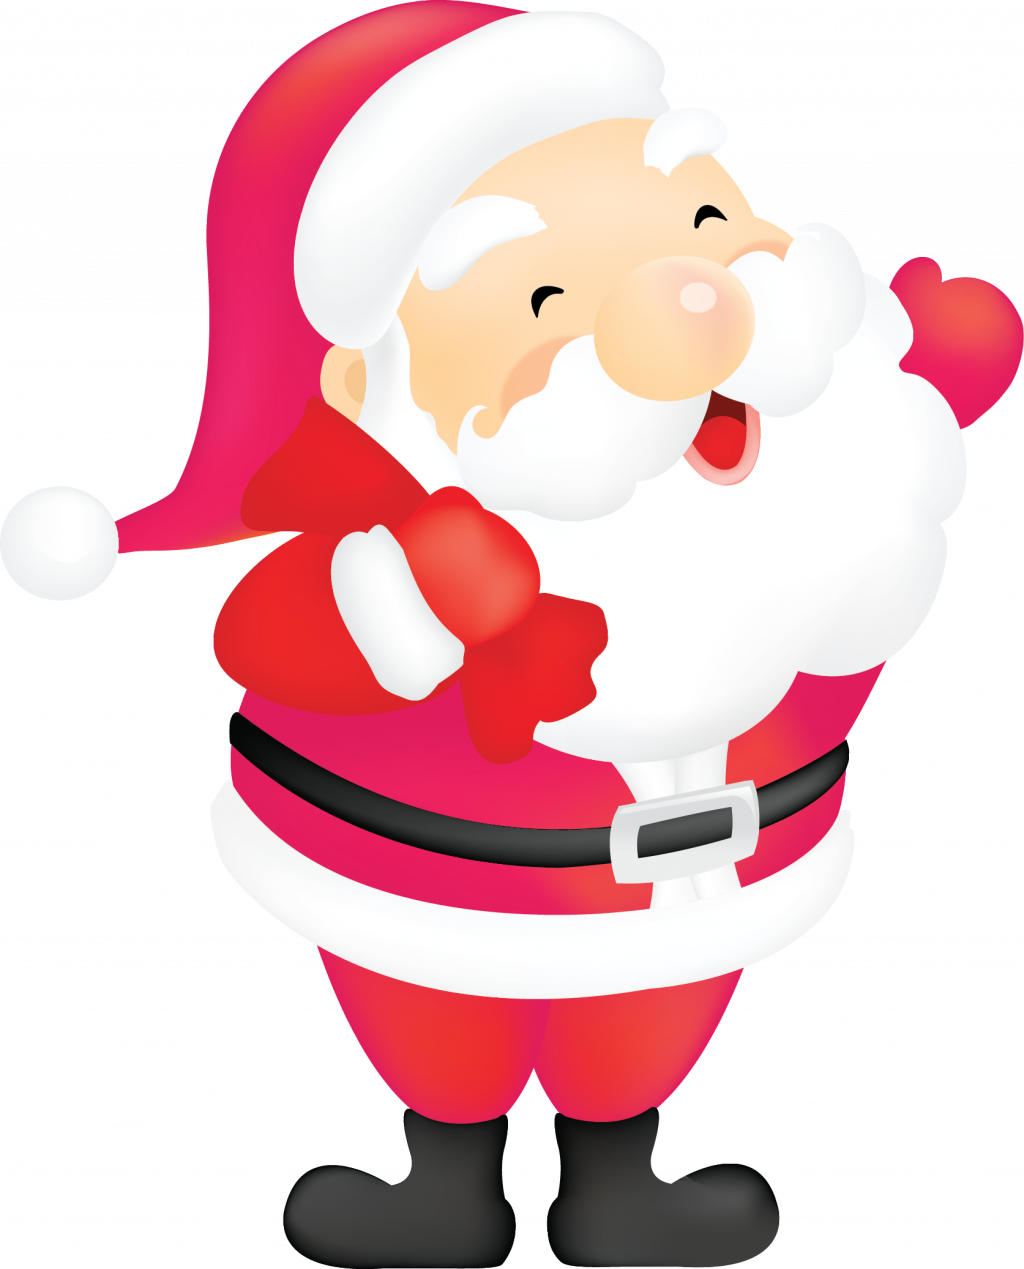 Santa clipart fishing, Santa fishing Transparent FREE for.